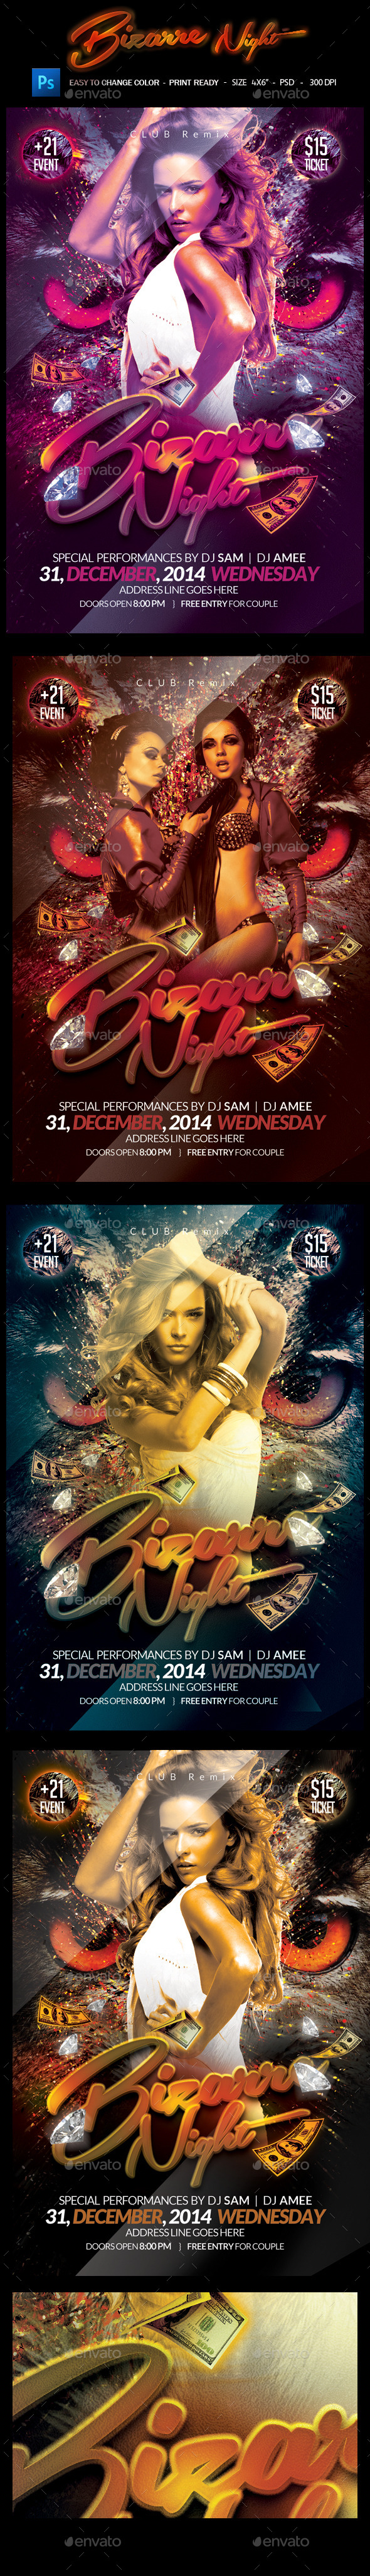 Bizzare Night Party Flyer - Clubs & Parties Events